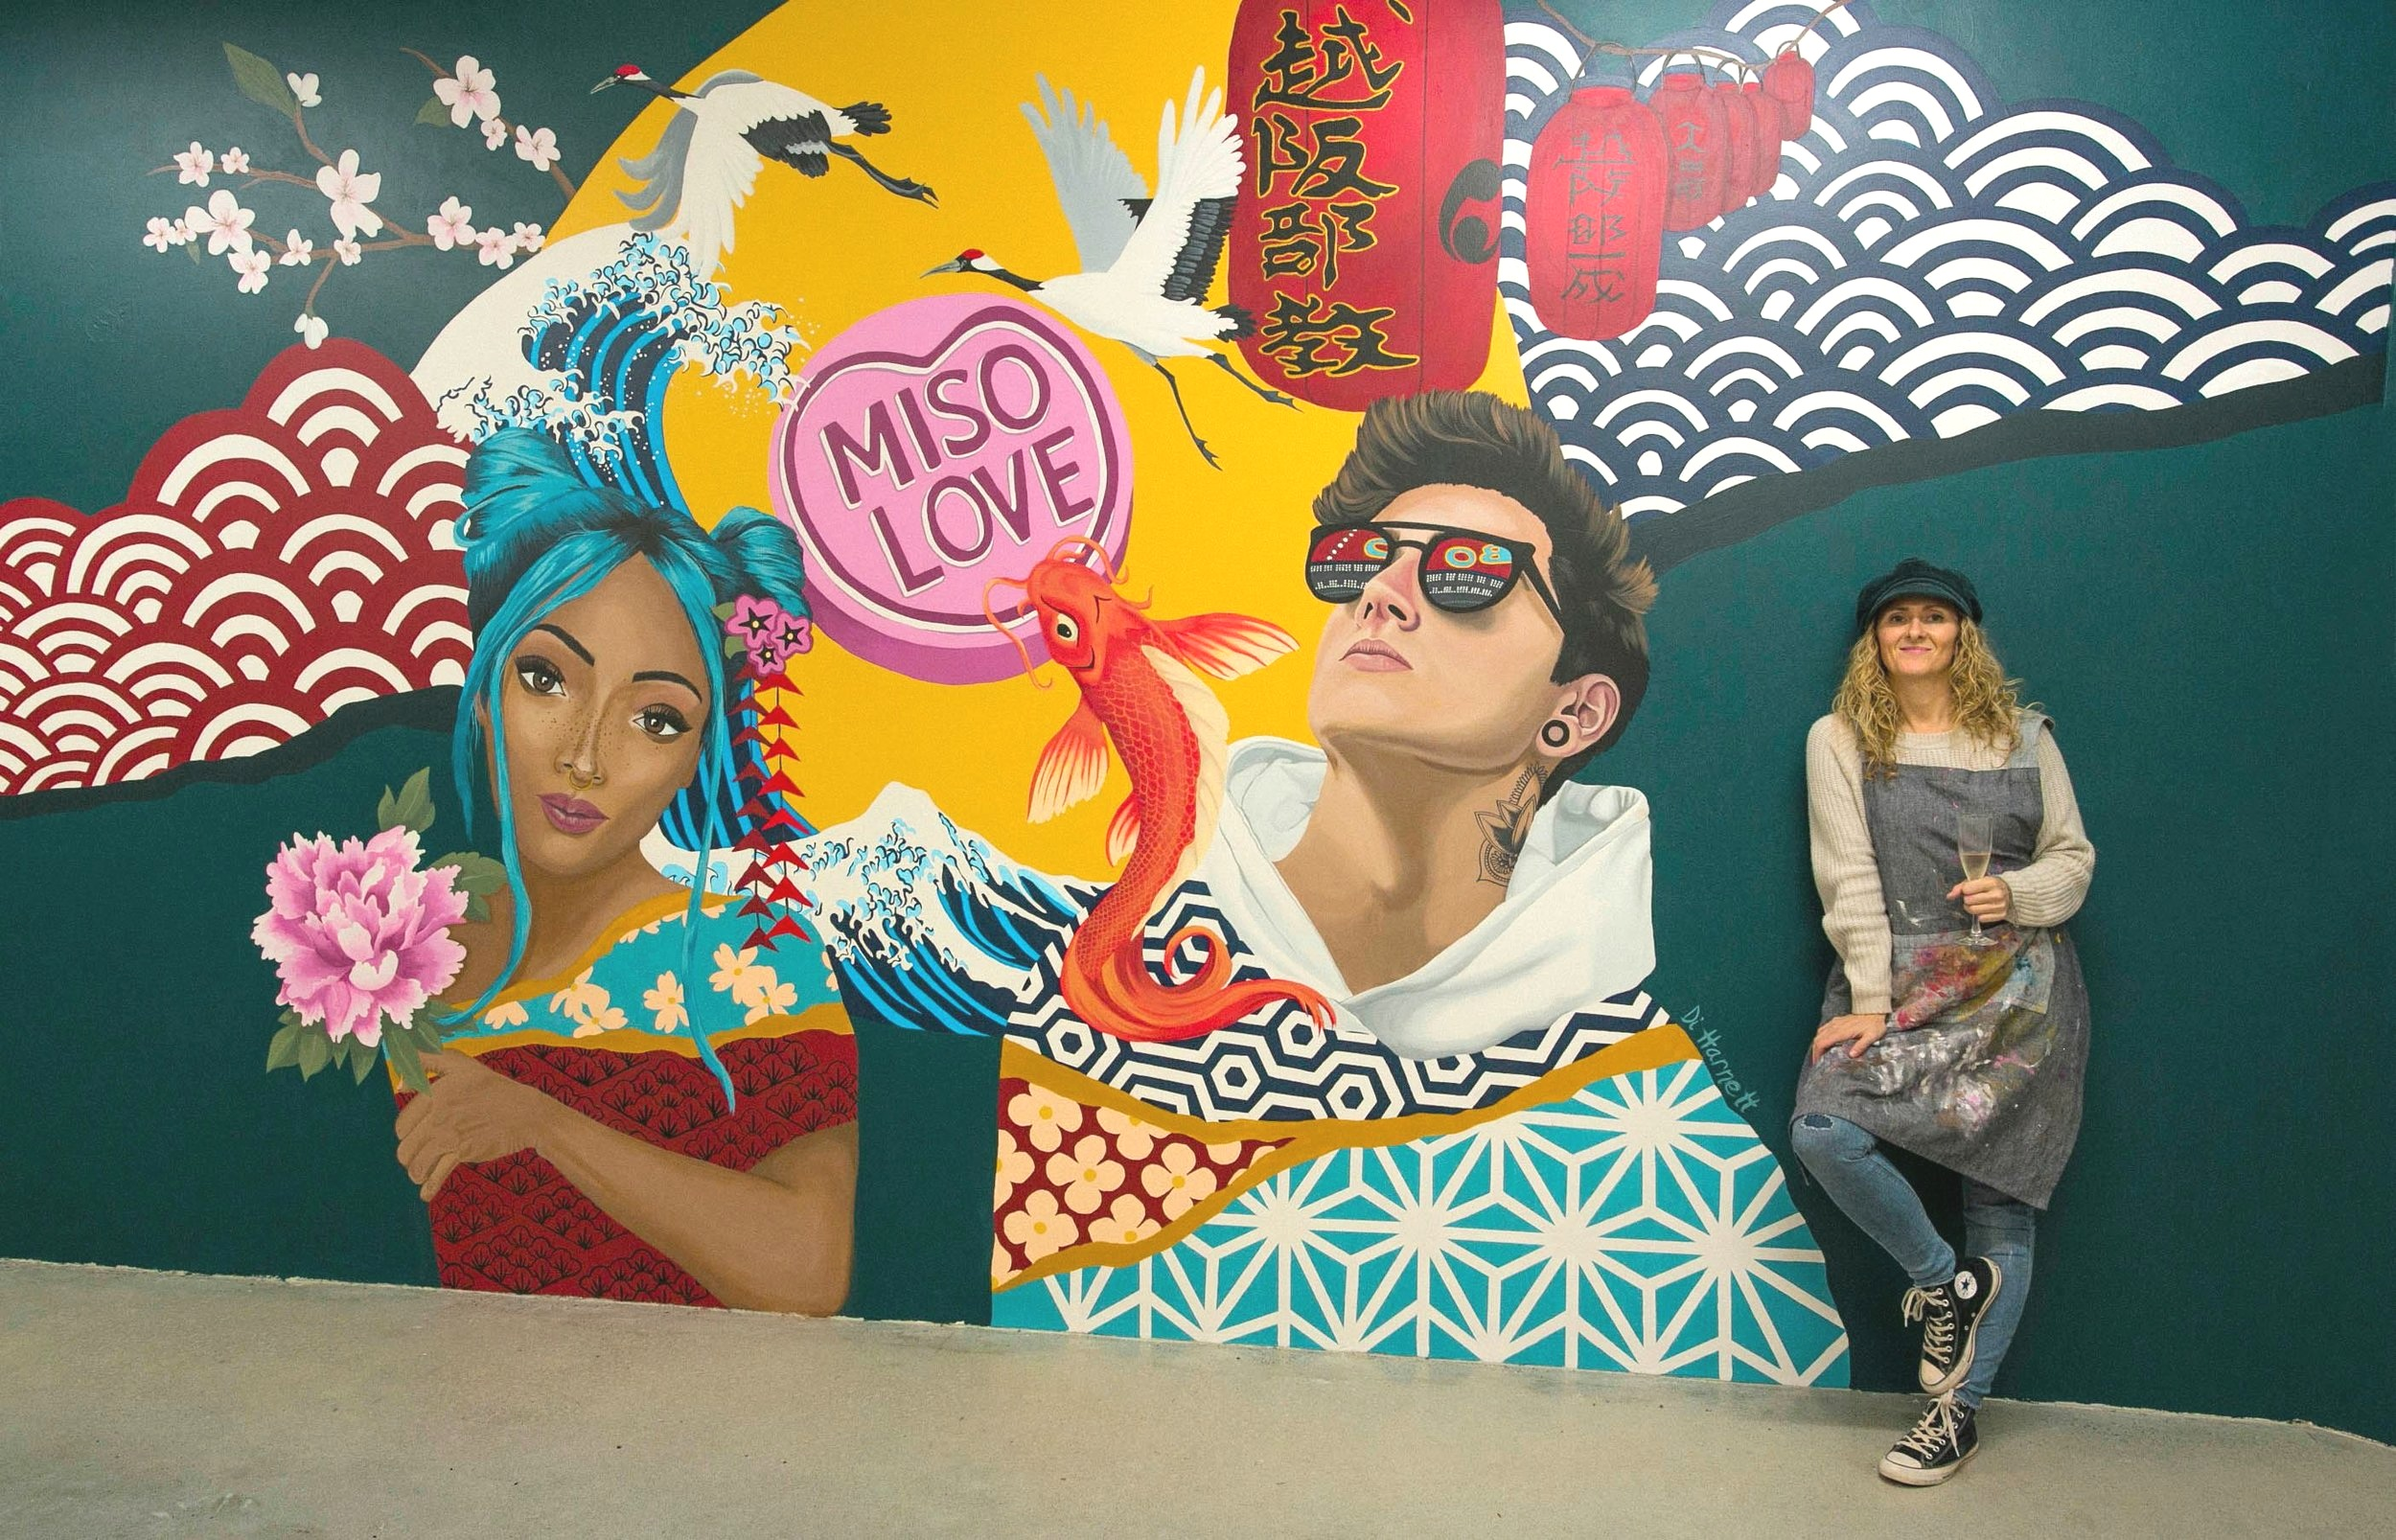 Mural for Miso Love